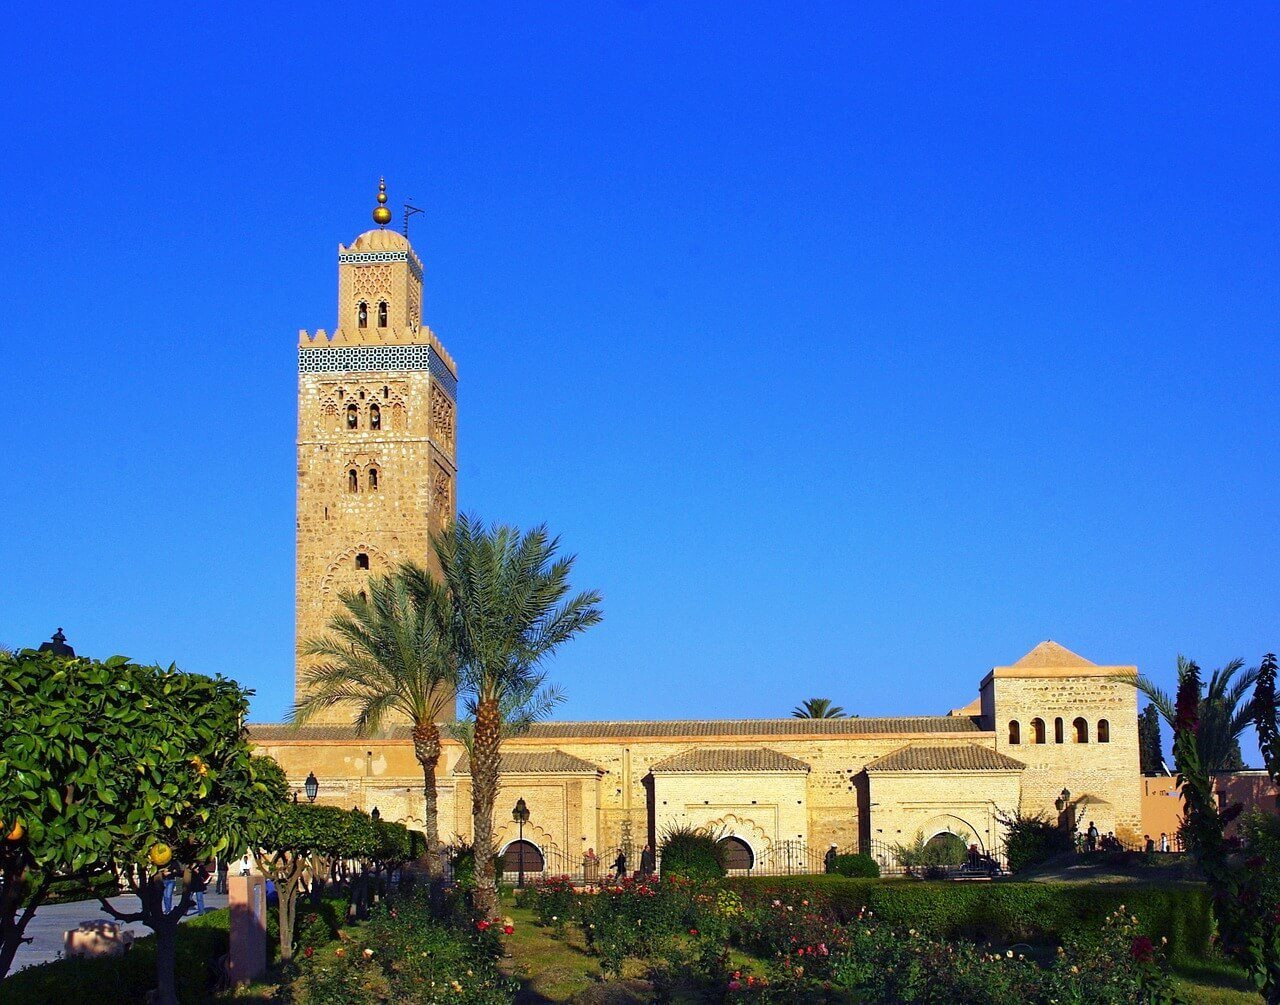 35 Unique Things To Do In Marrakech In 2021